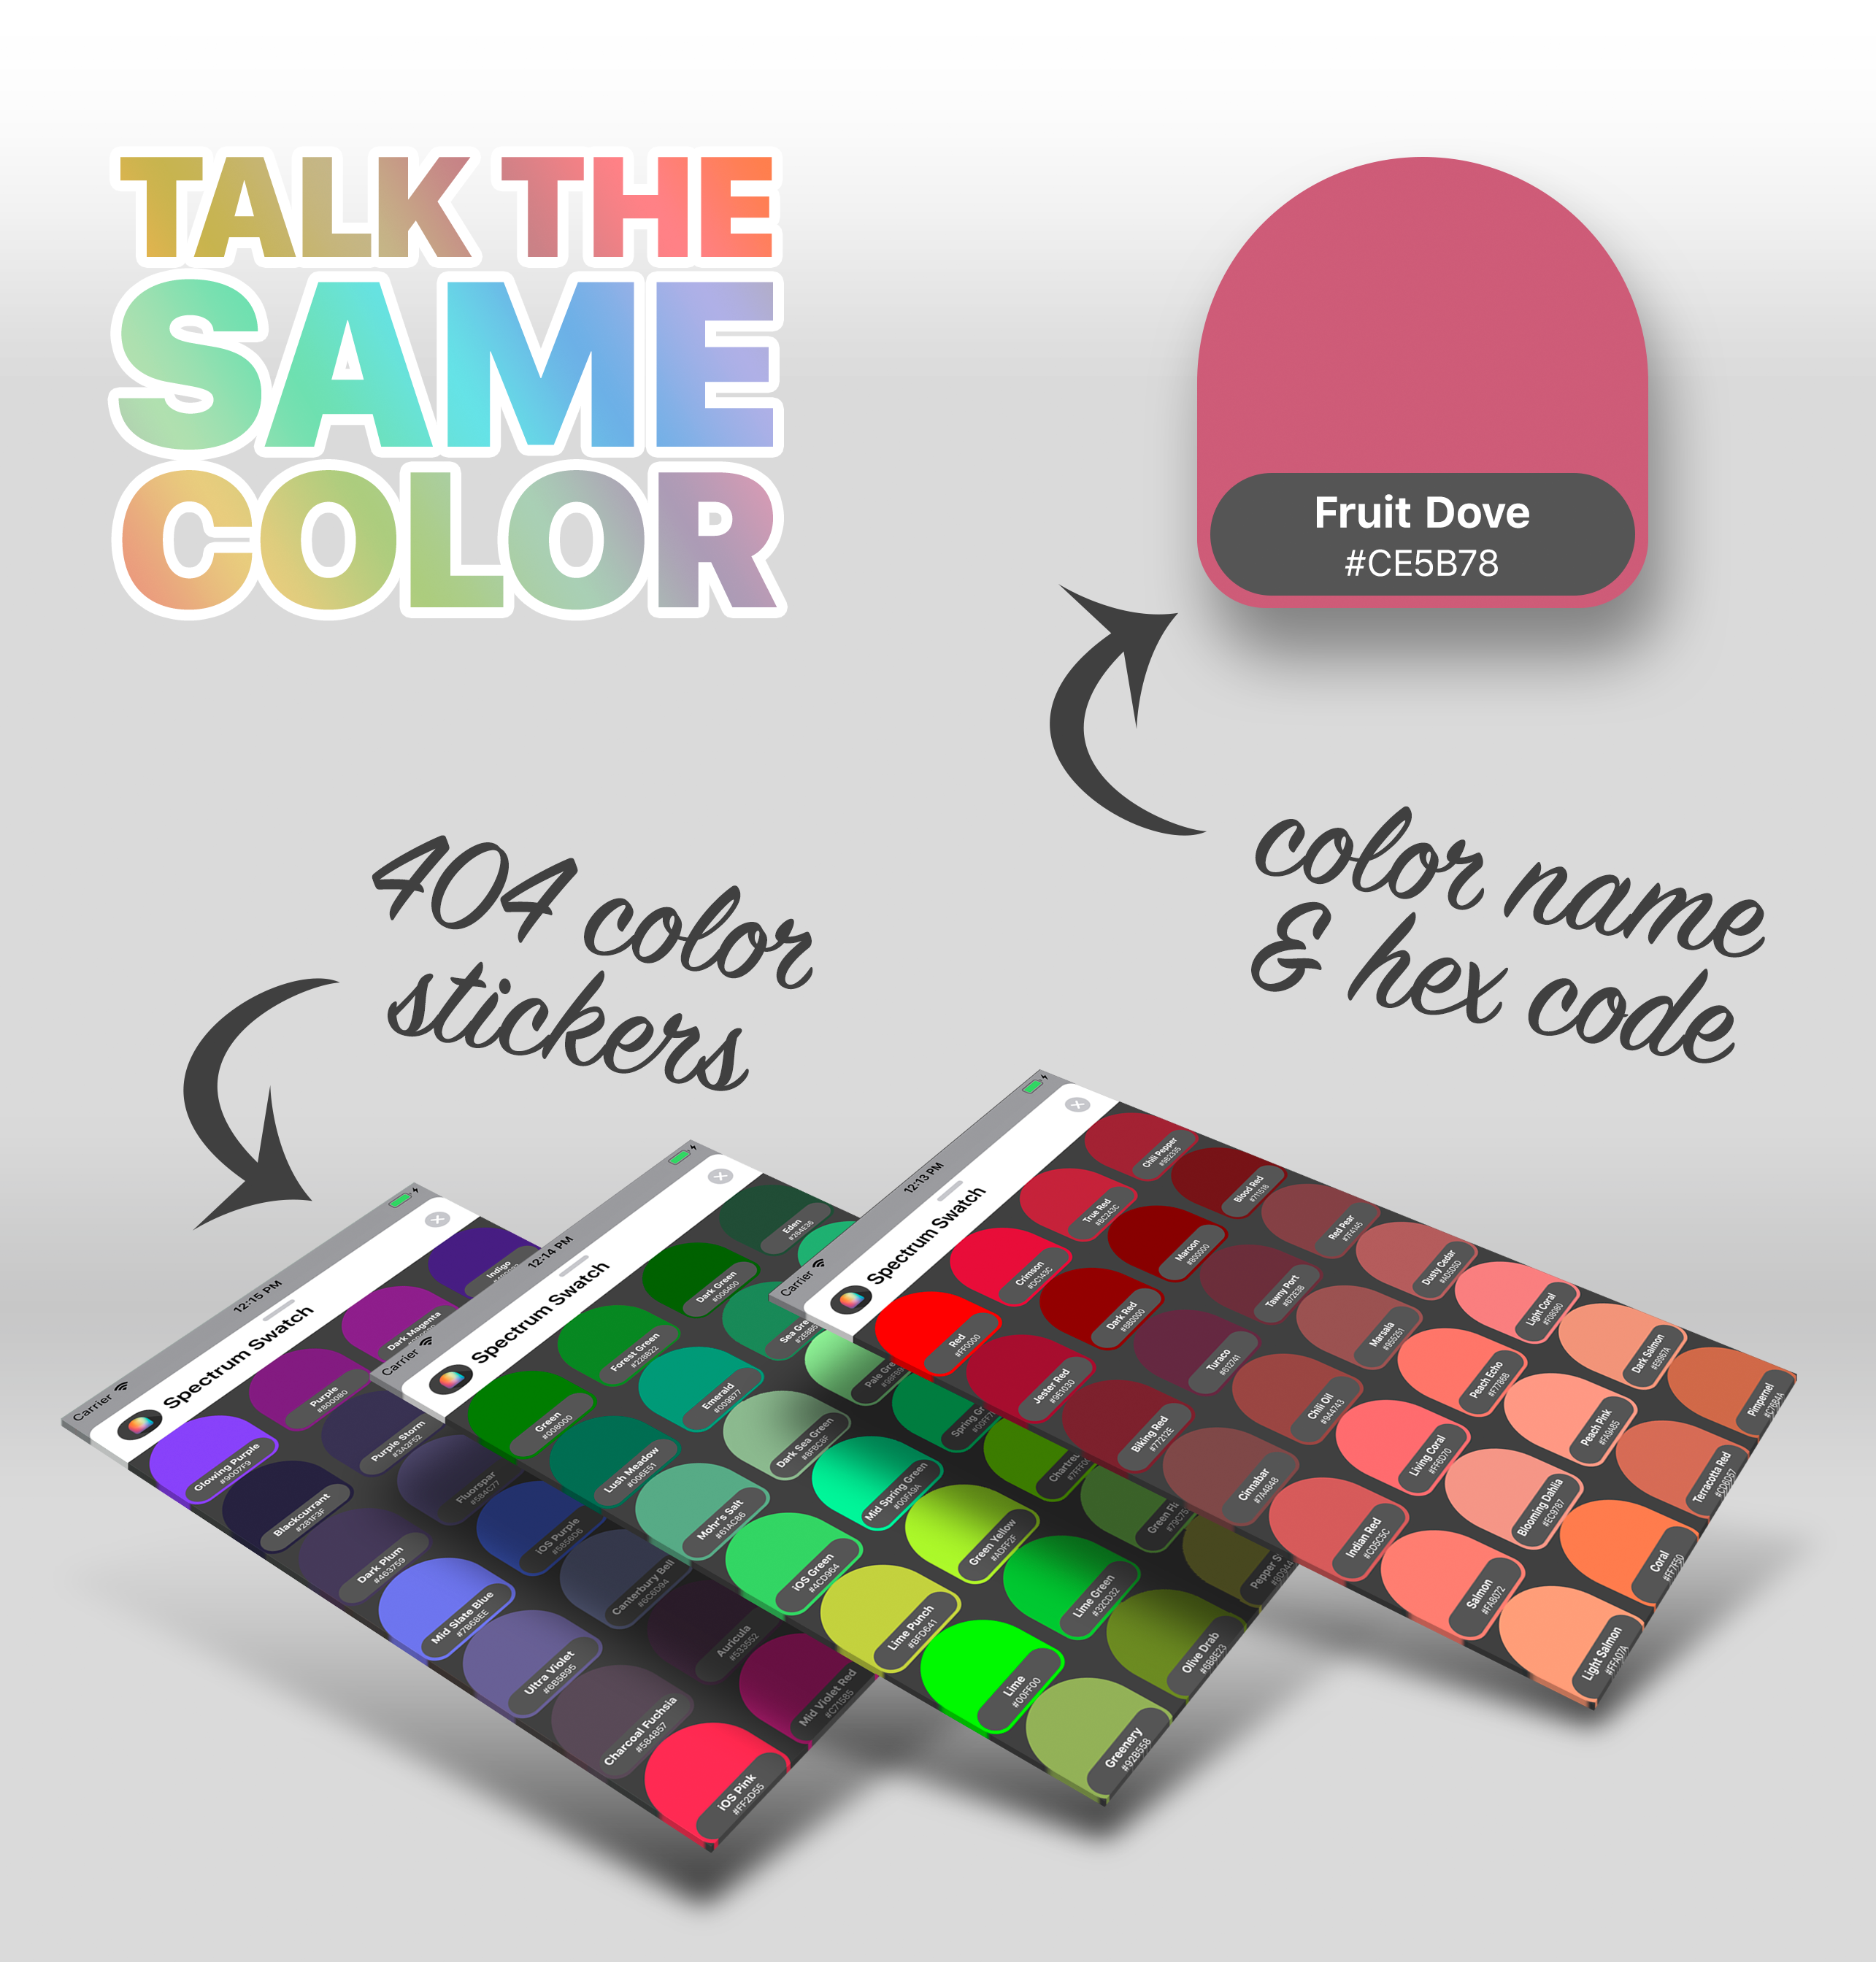 Talk the same color with Spectrum Swatch Stickers for iMessage